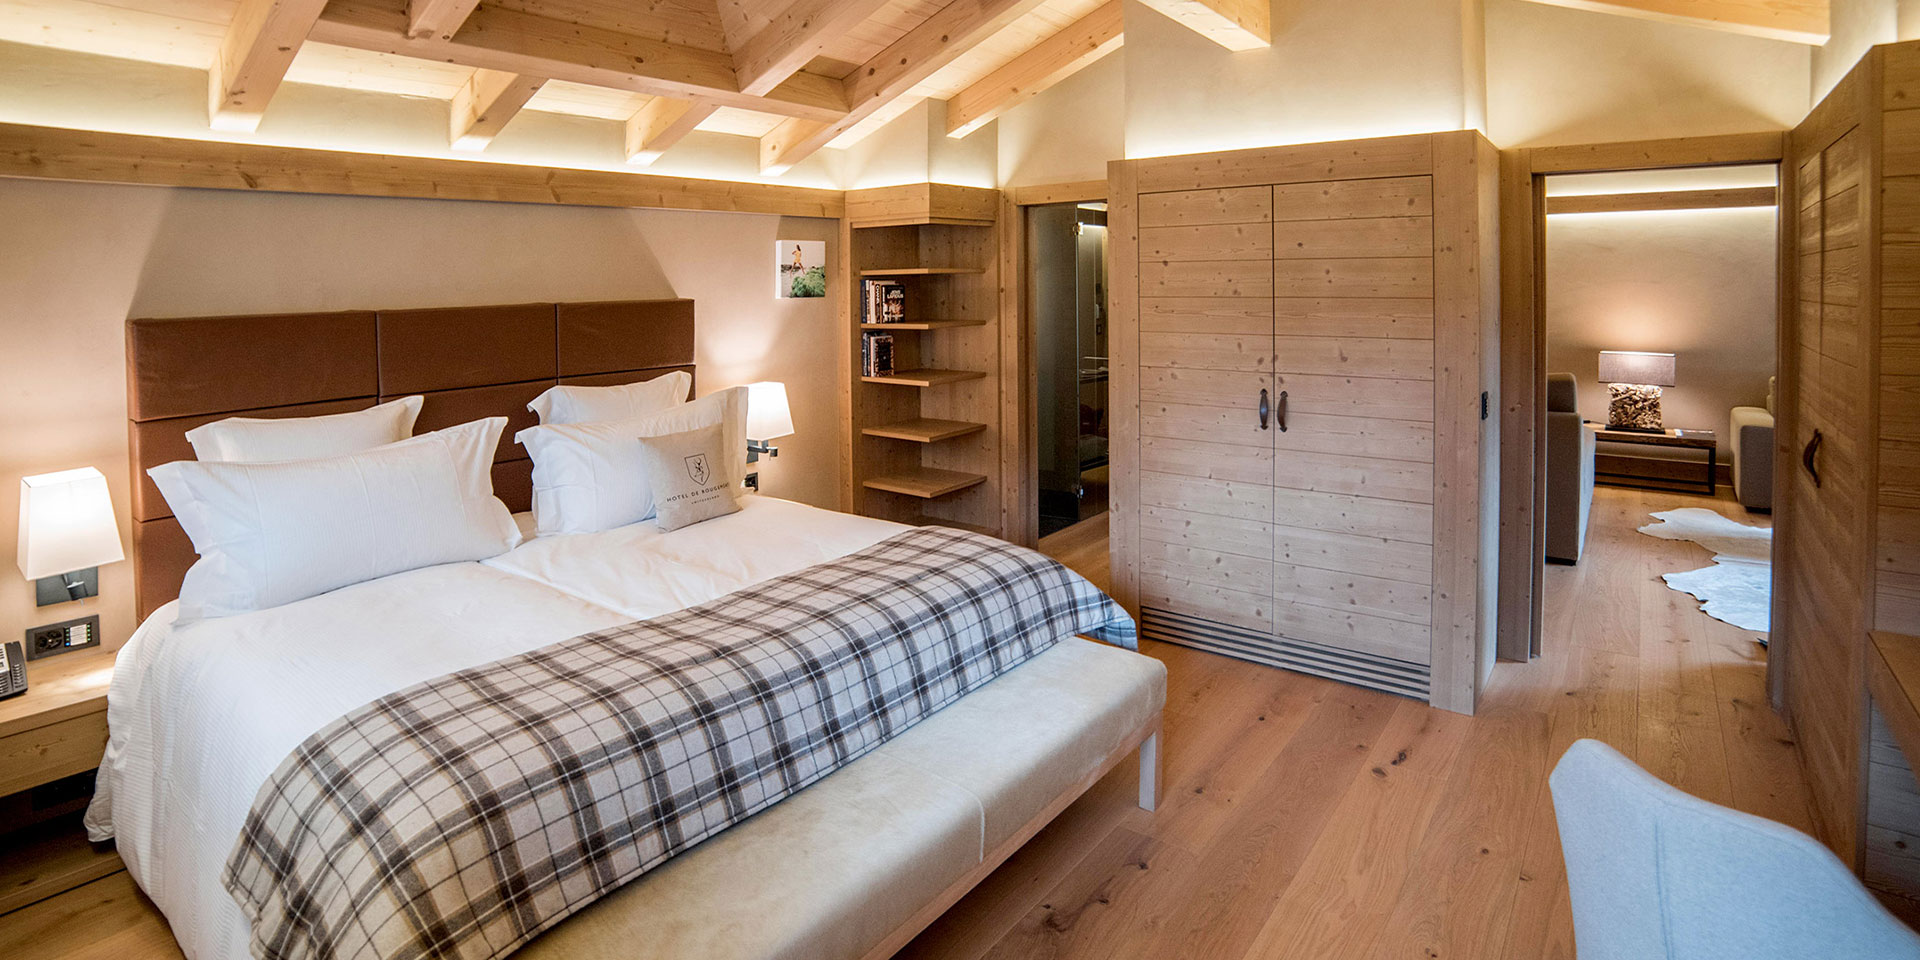 HotelDeRougemontAndSpa-Rougemont-Switzerland-Europe-rooms.jpg